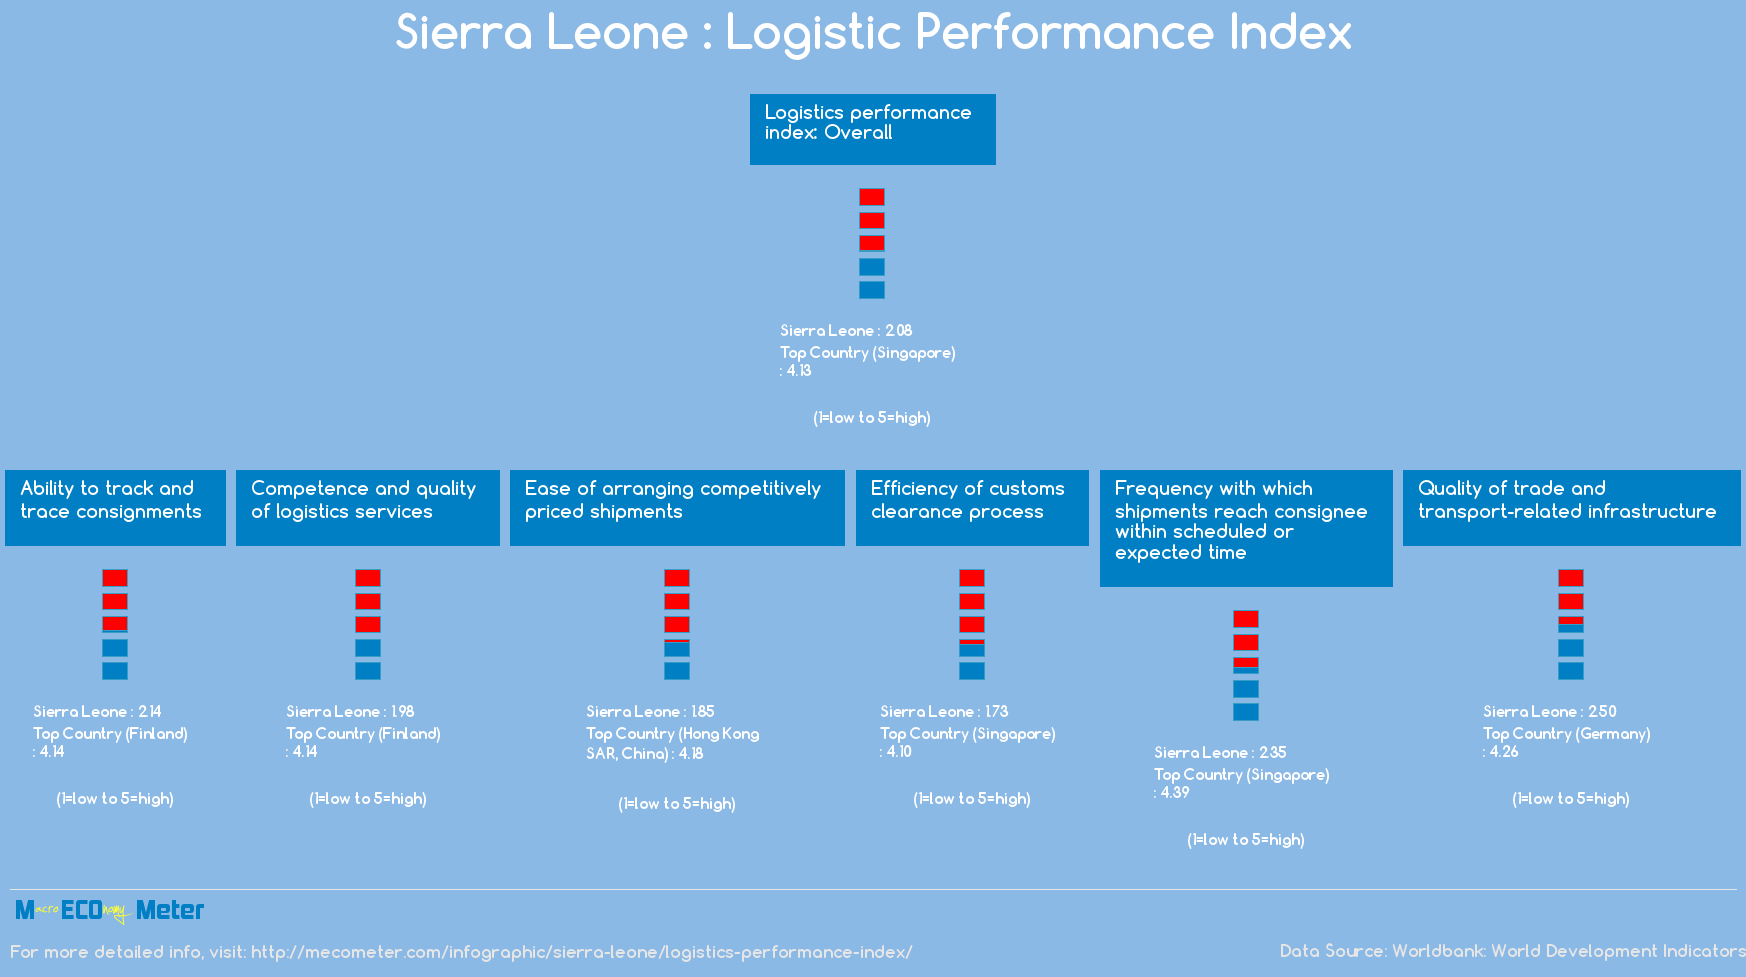 Sierra Leone : Logistic Performance Index